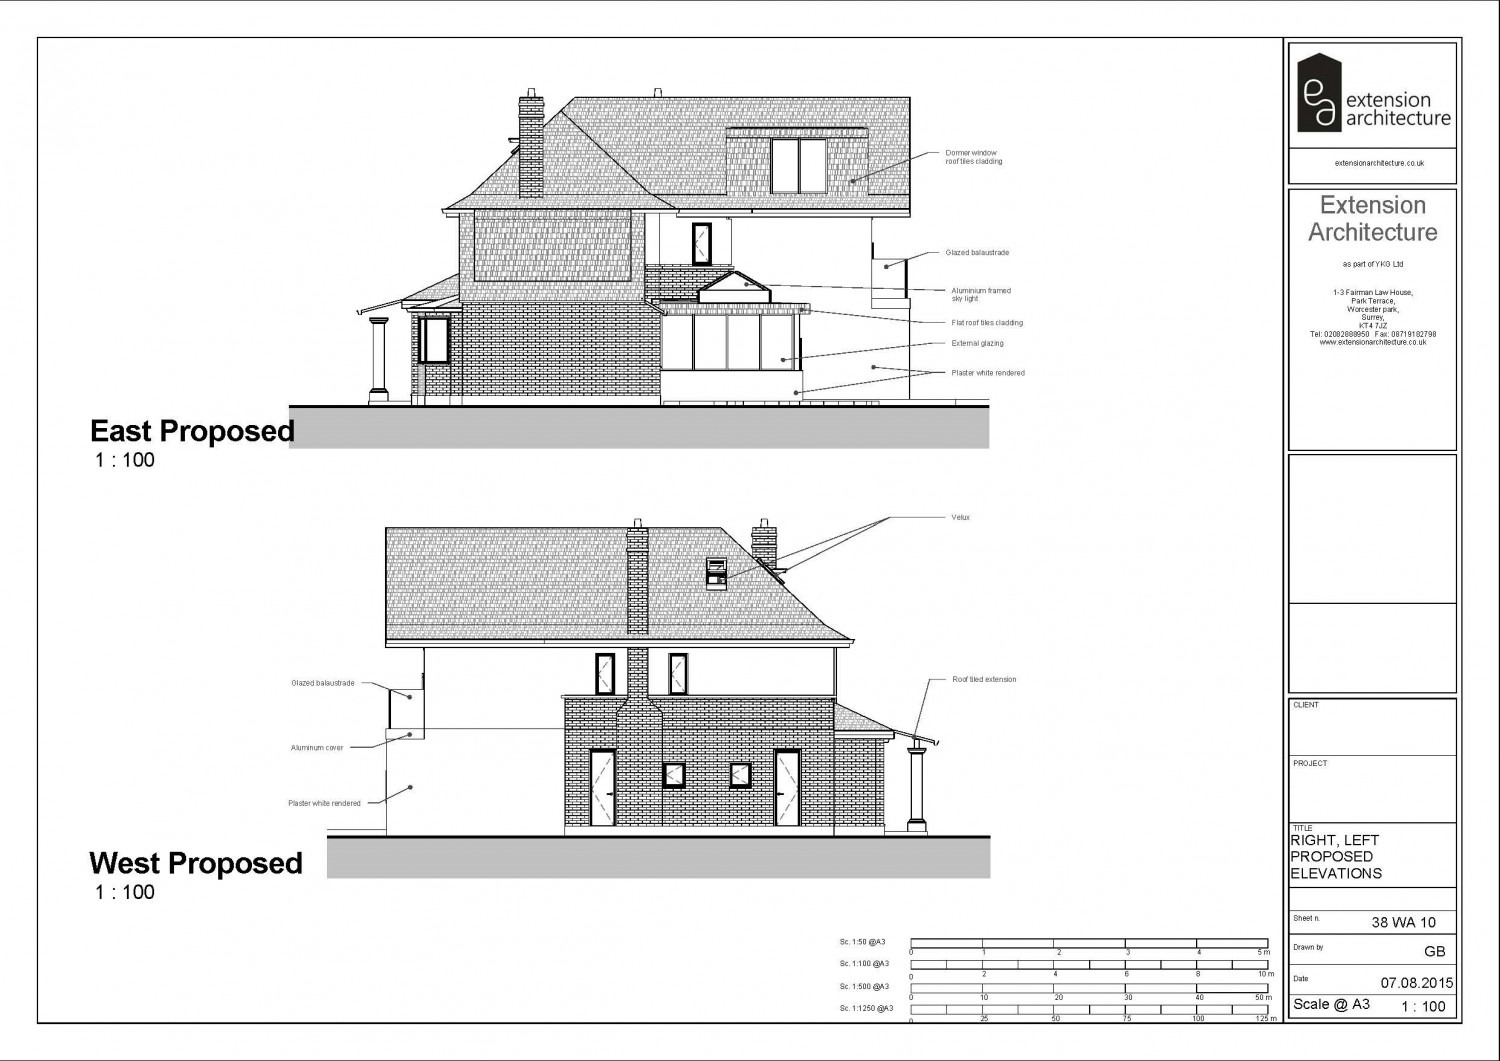 38 wa page 11 extension architecture london planning for Extension architecte